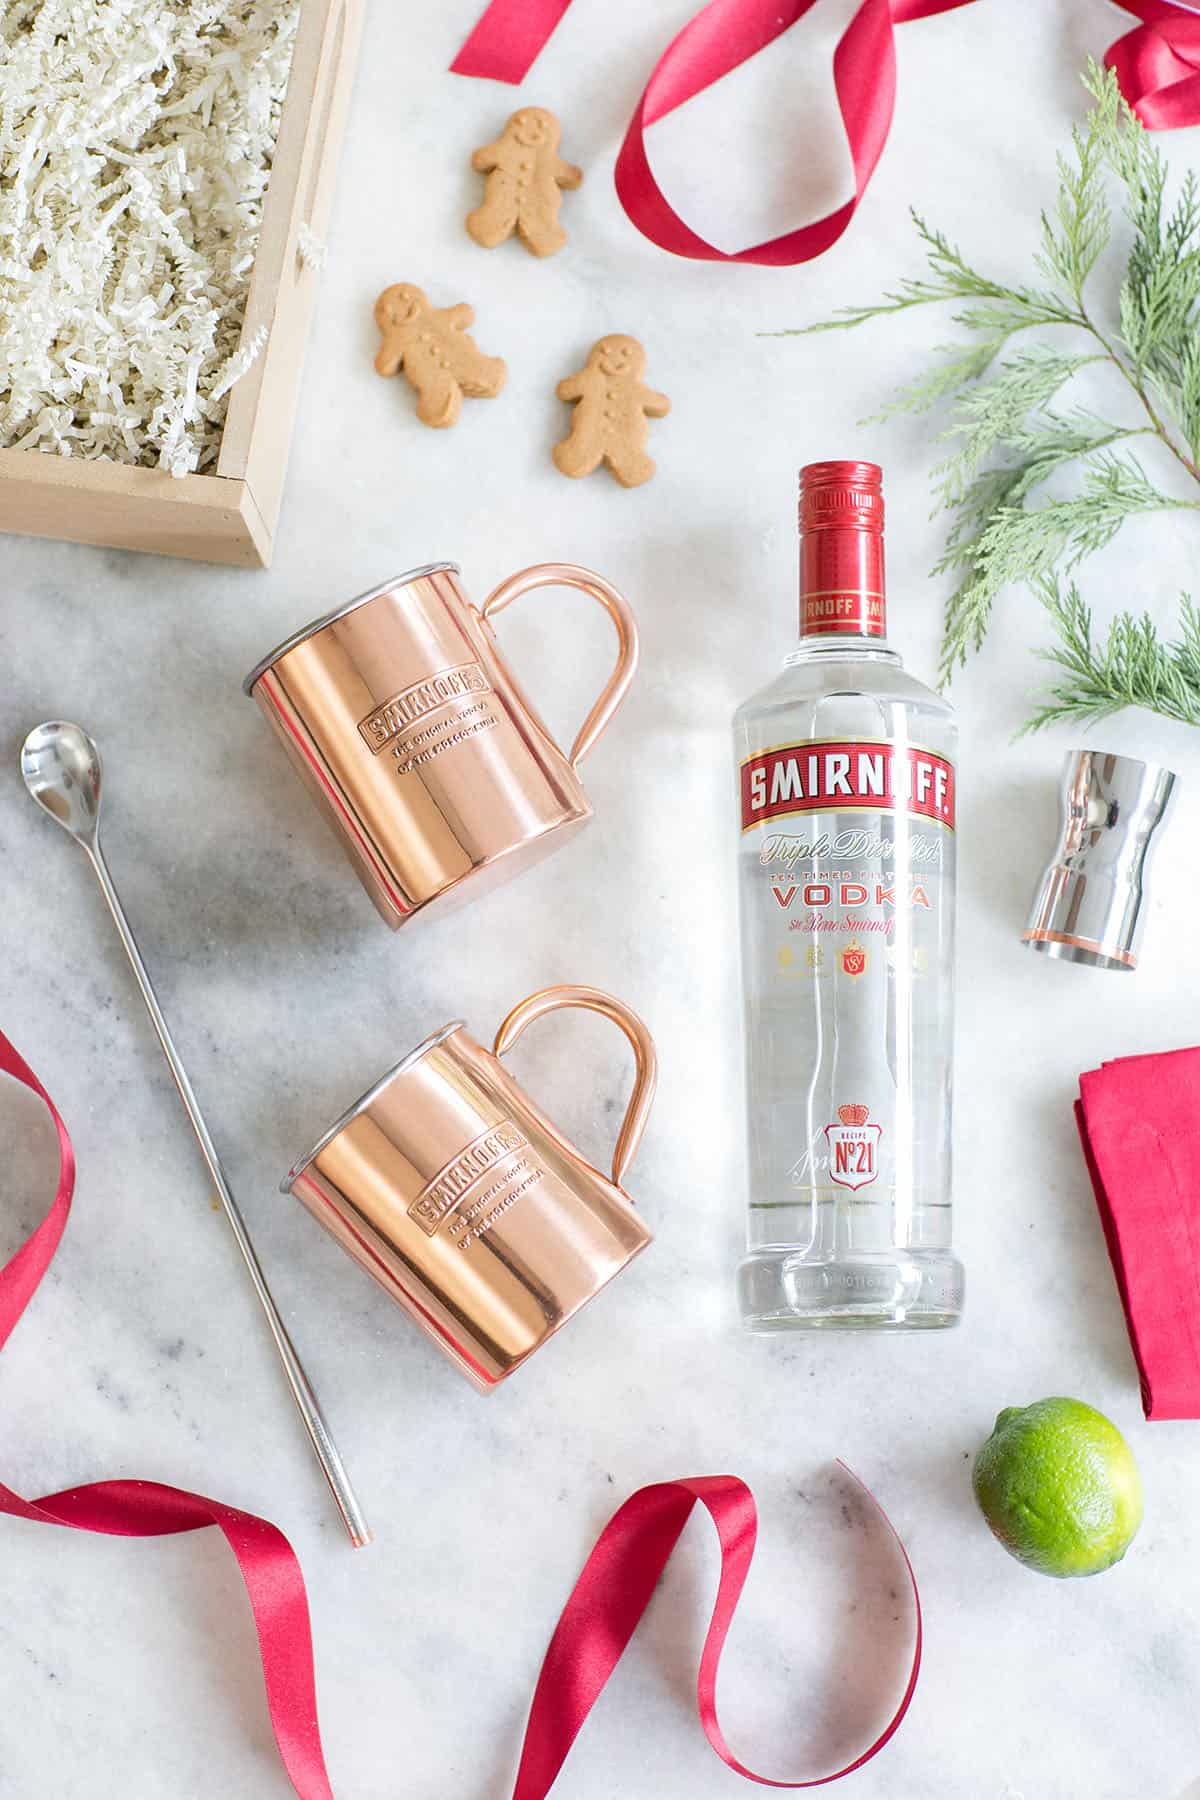 Gingerbread Moscow mule gift set